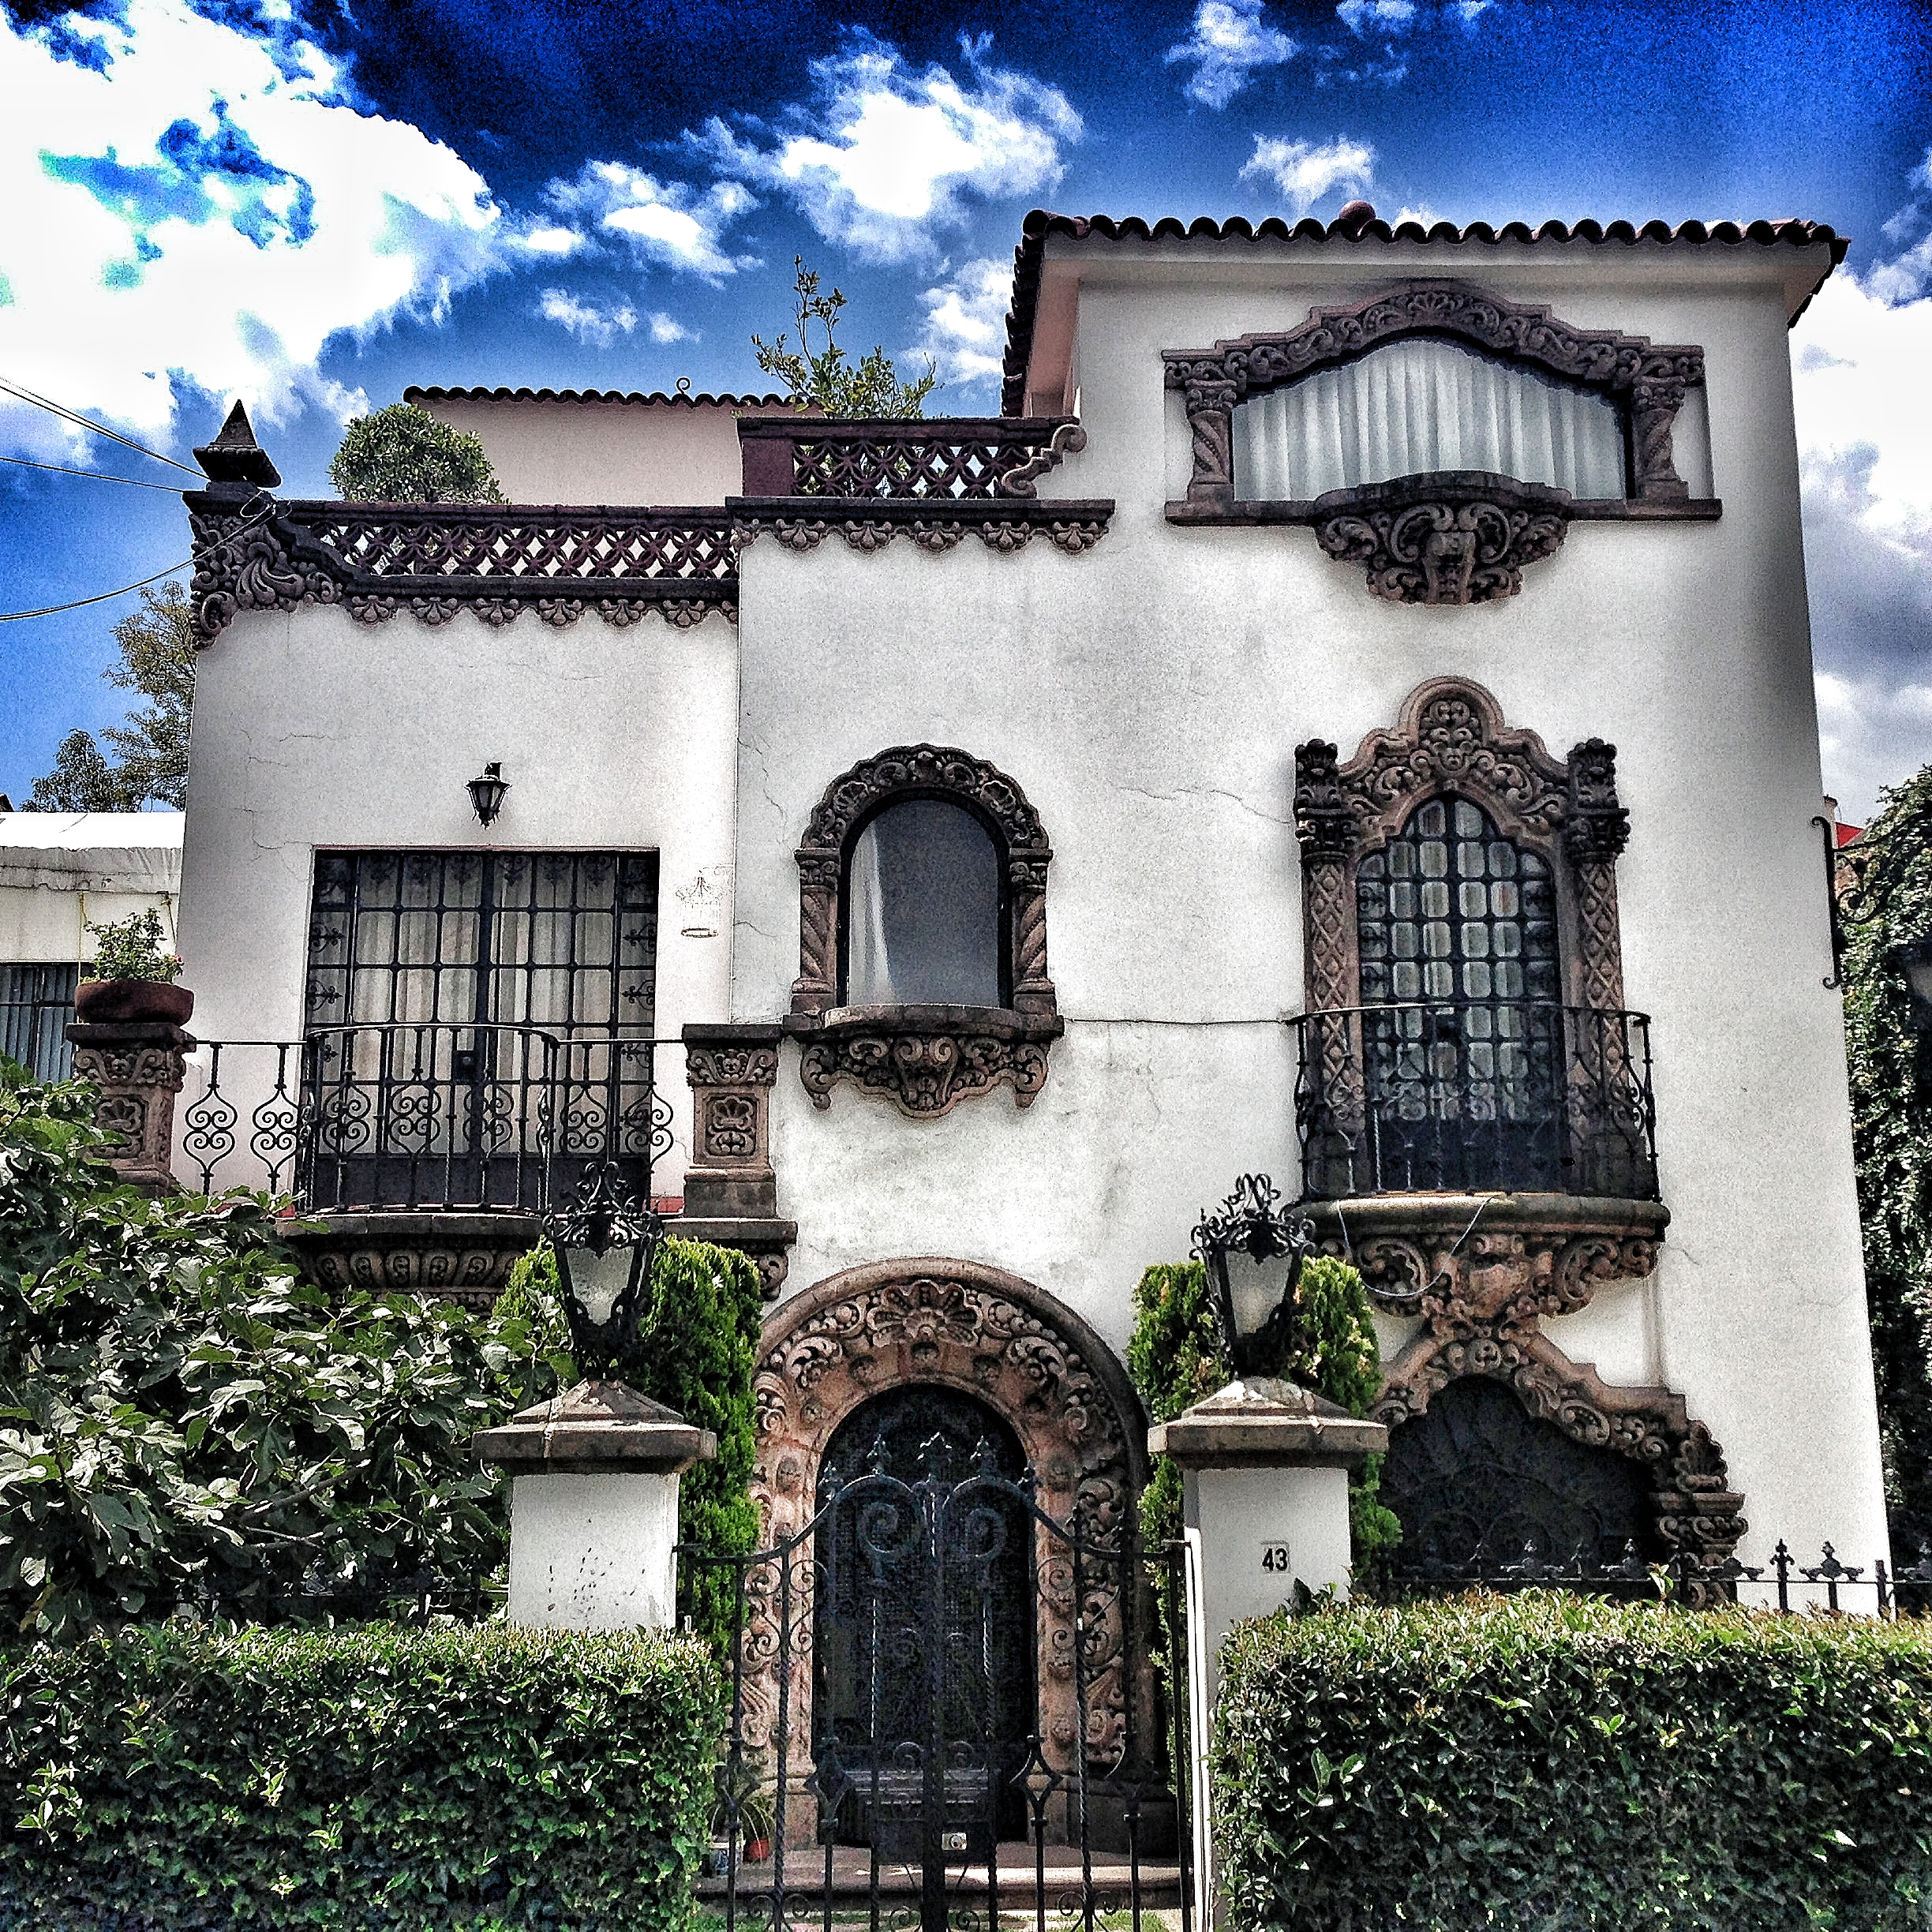 How To Build And Add Spanish Revival Elements To A House Quora